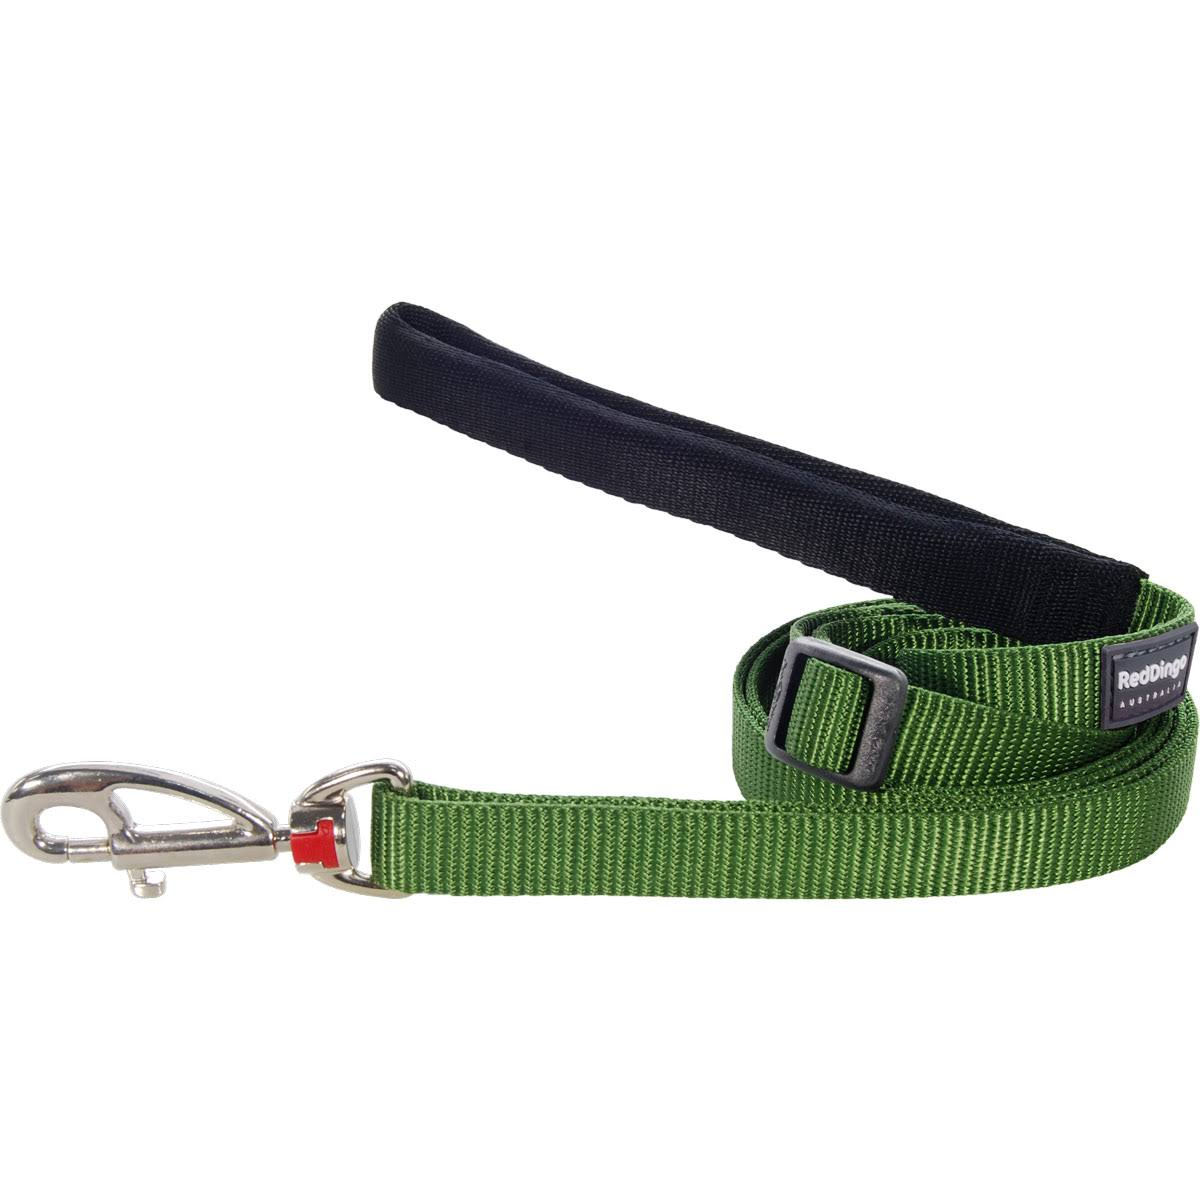 Red Dingo Dog Lead - Green, 100cm to 180cm, Medium